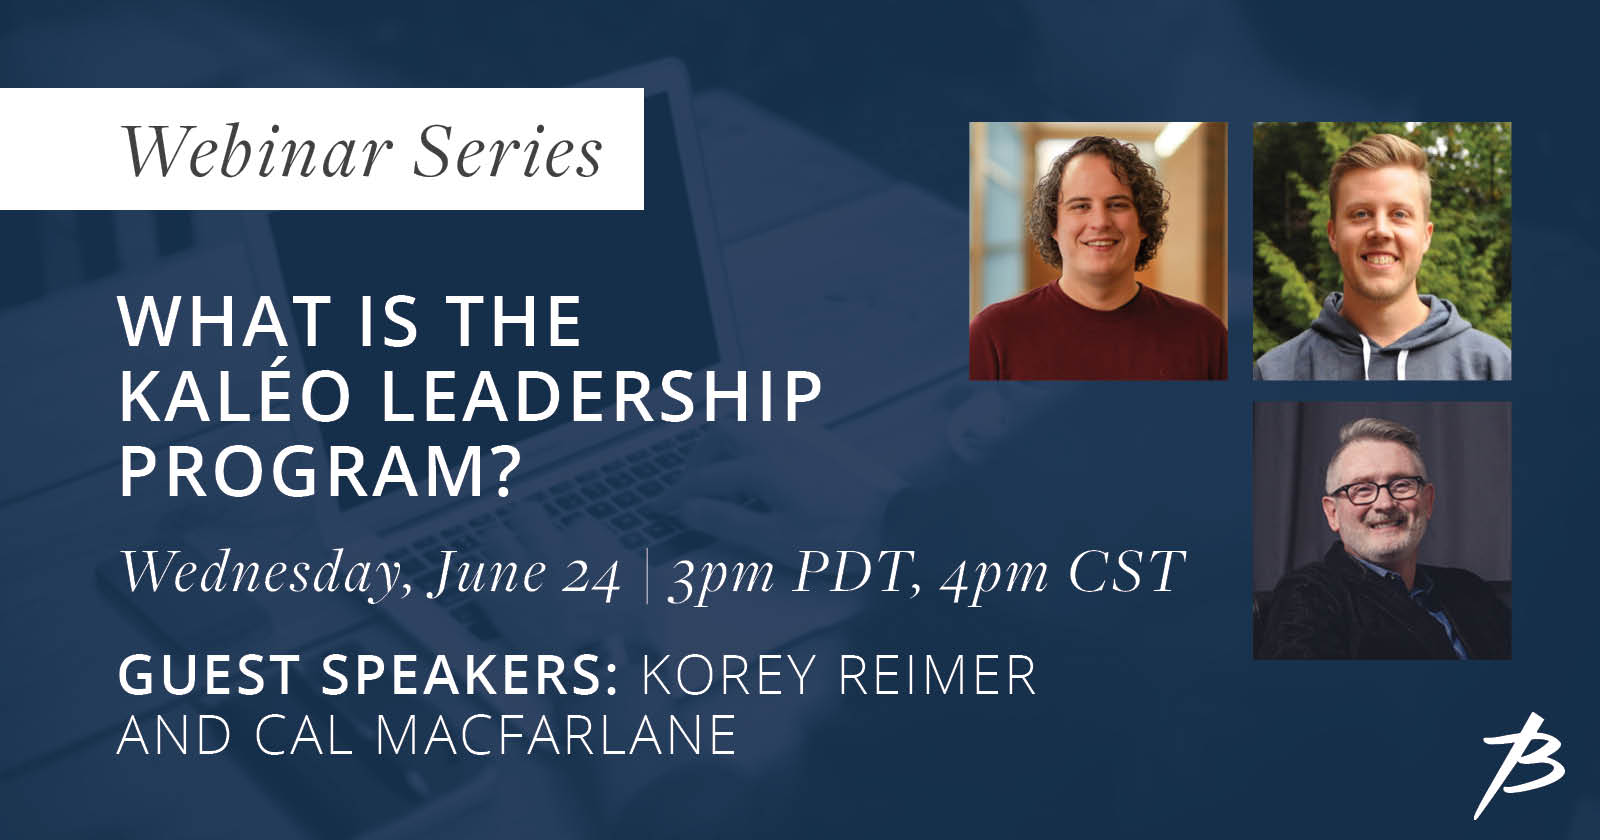 Register for the webinar to learn about the Kaléo leadership program and what next year will look like!